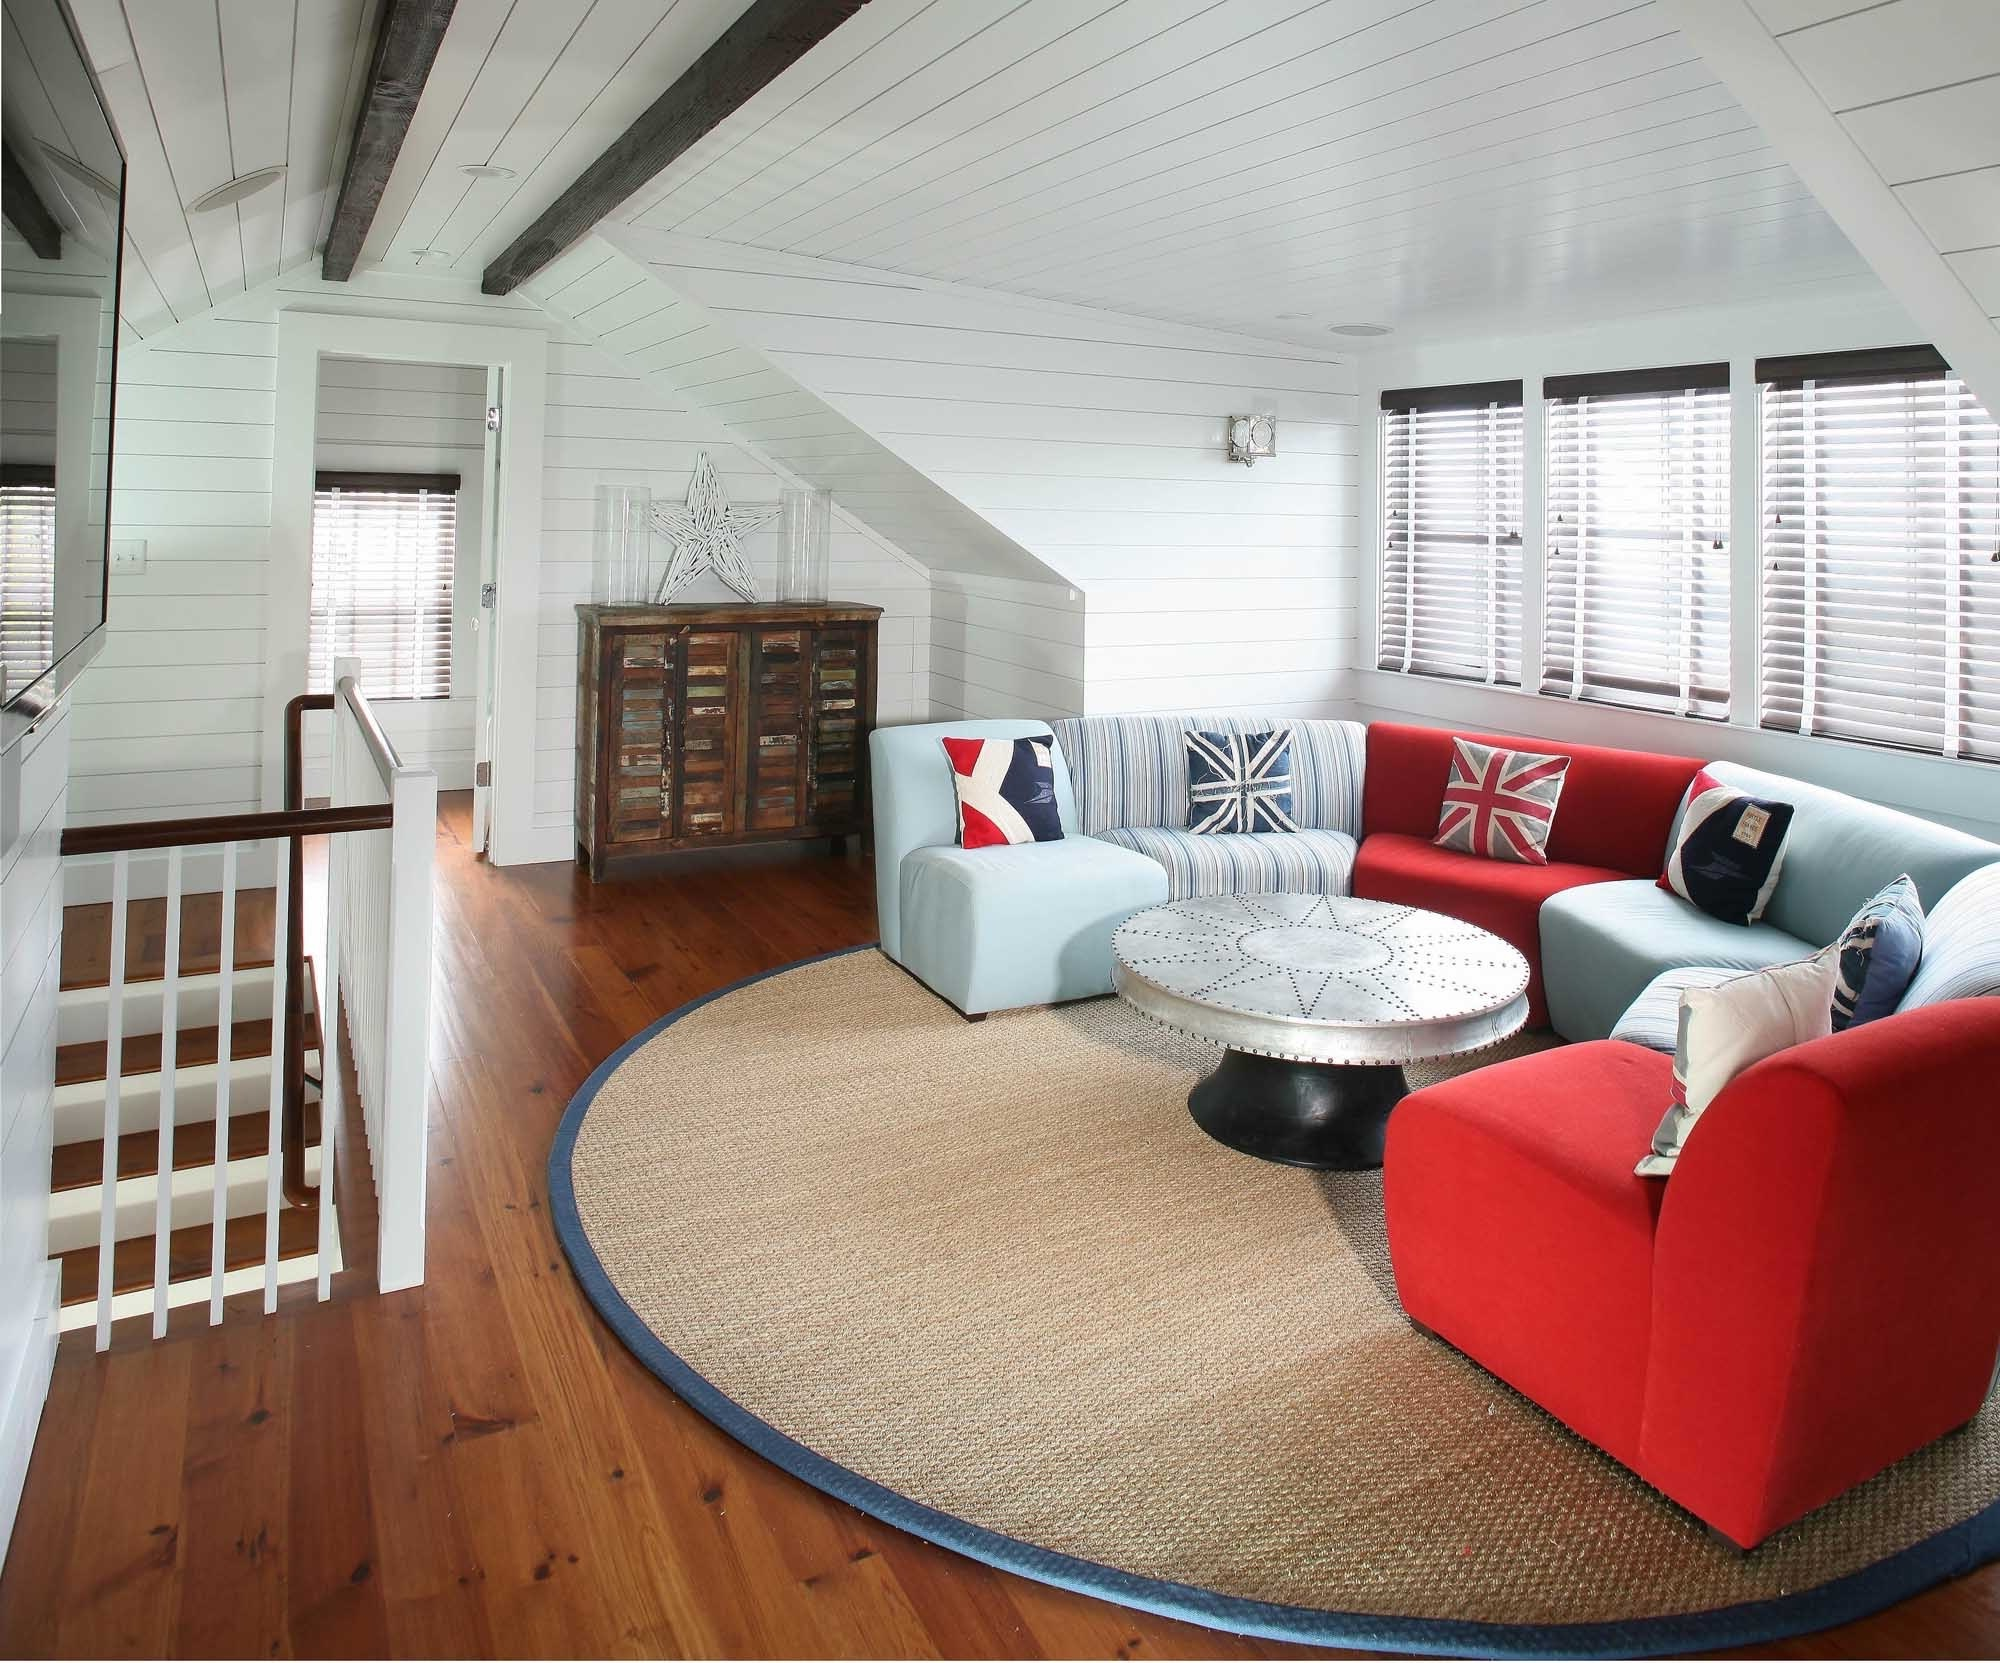 Simple Modern Attic Living Room Remodel (View 21 of 26)